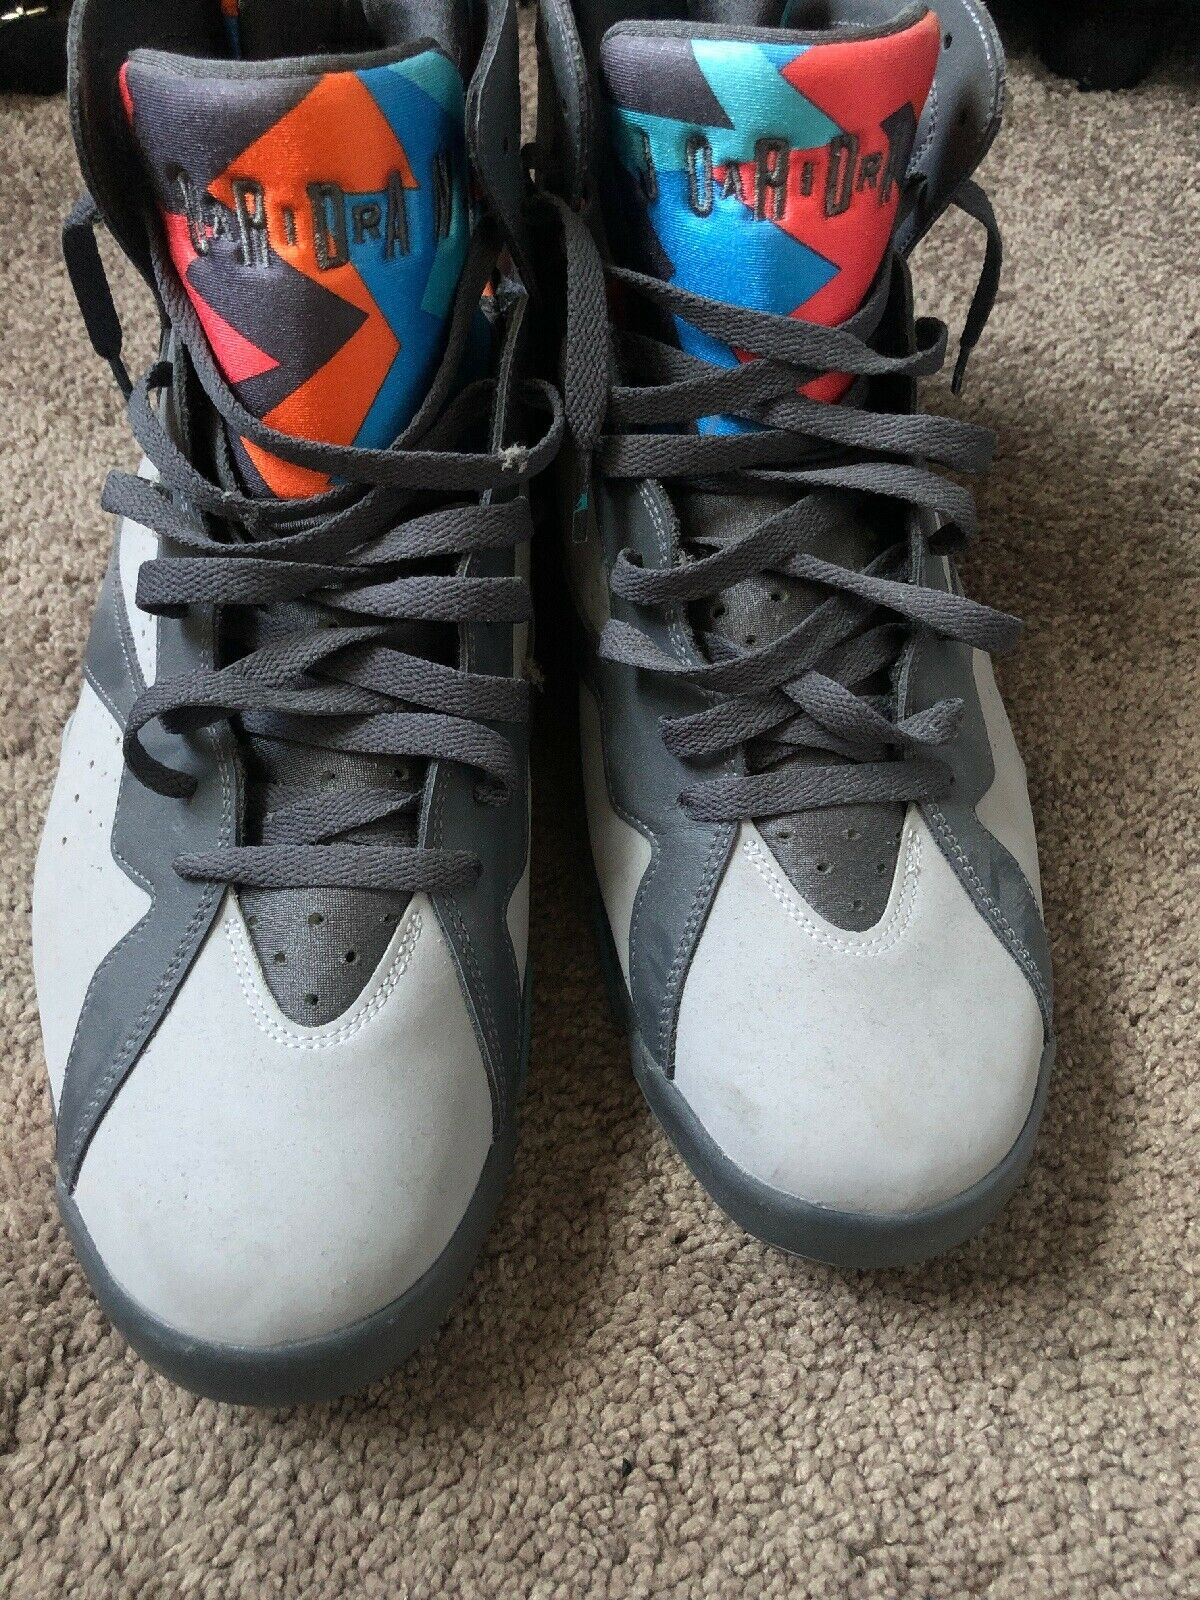 59bfdc583 AIR JORDAN 13 XIII RETRO CP3 PE 823902-015 HORNETS AWAY NEW SIZE 10.5 DS